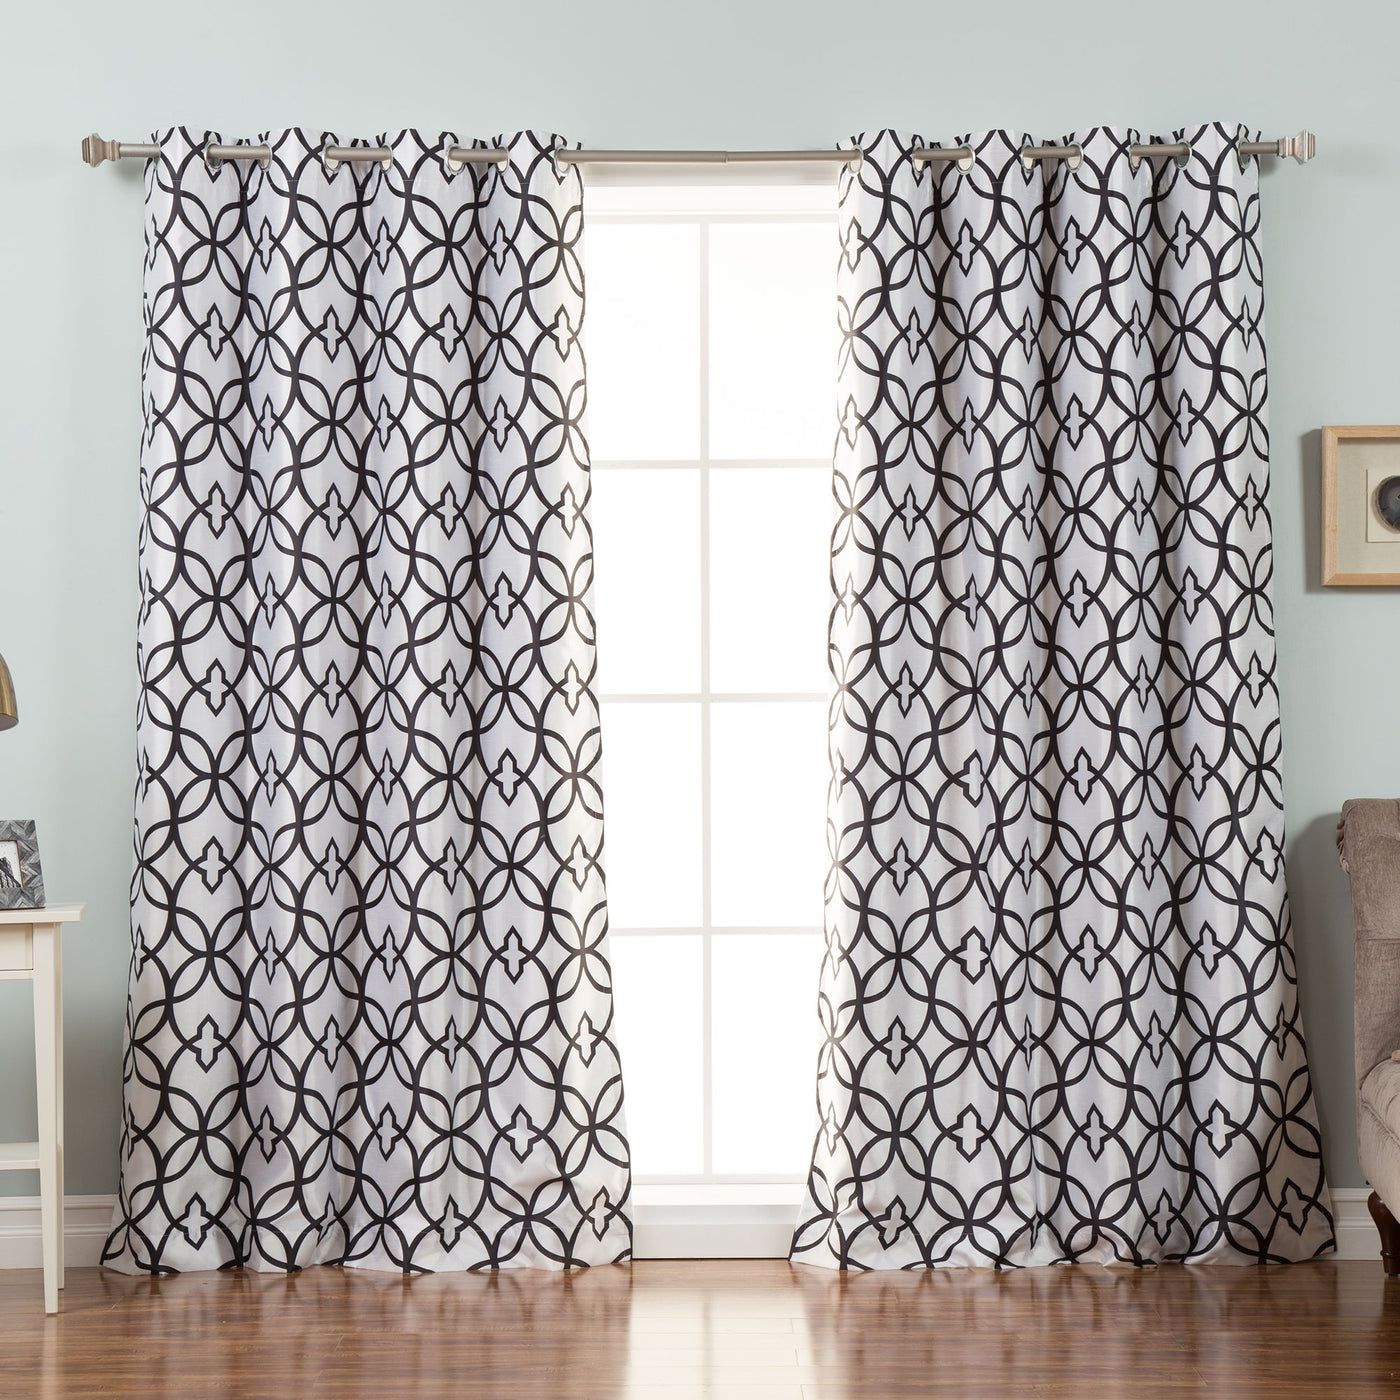 Faux Silk Trellis Curtains